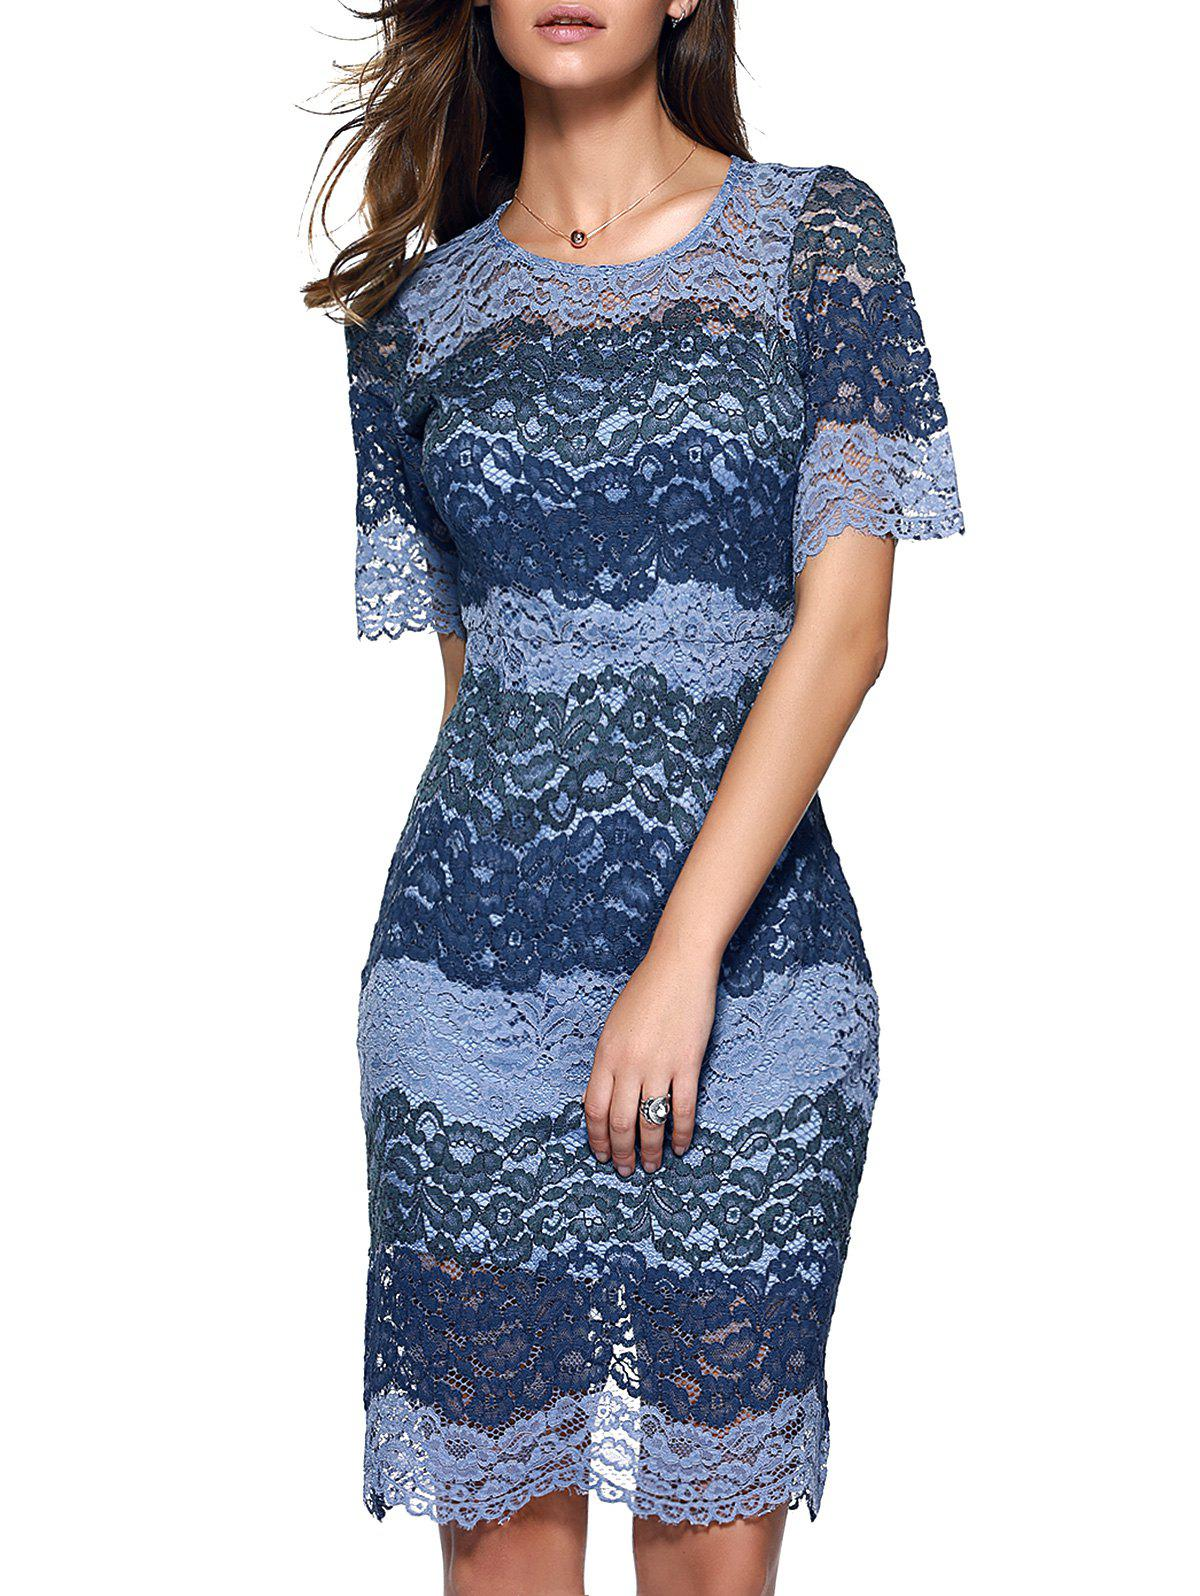 Attractive Women's Flounced Slit Lace Dress - PURPLISH BLUE XL